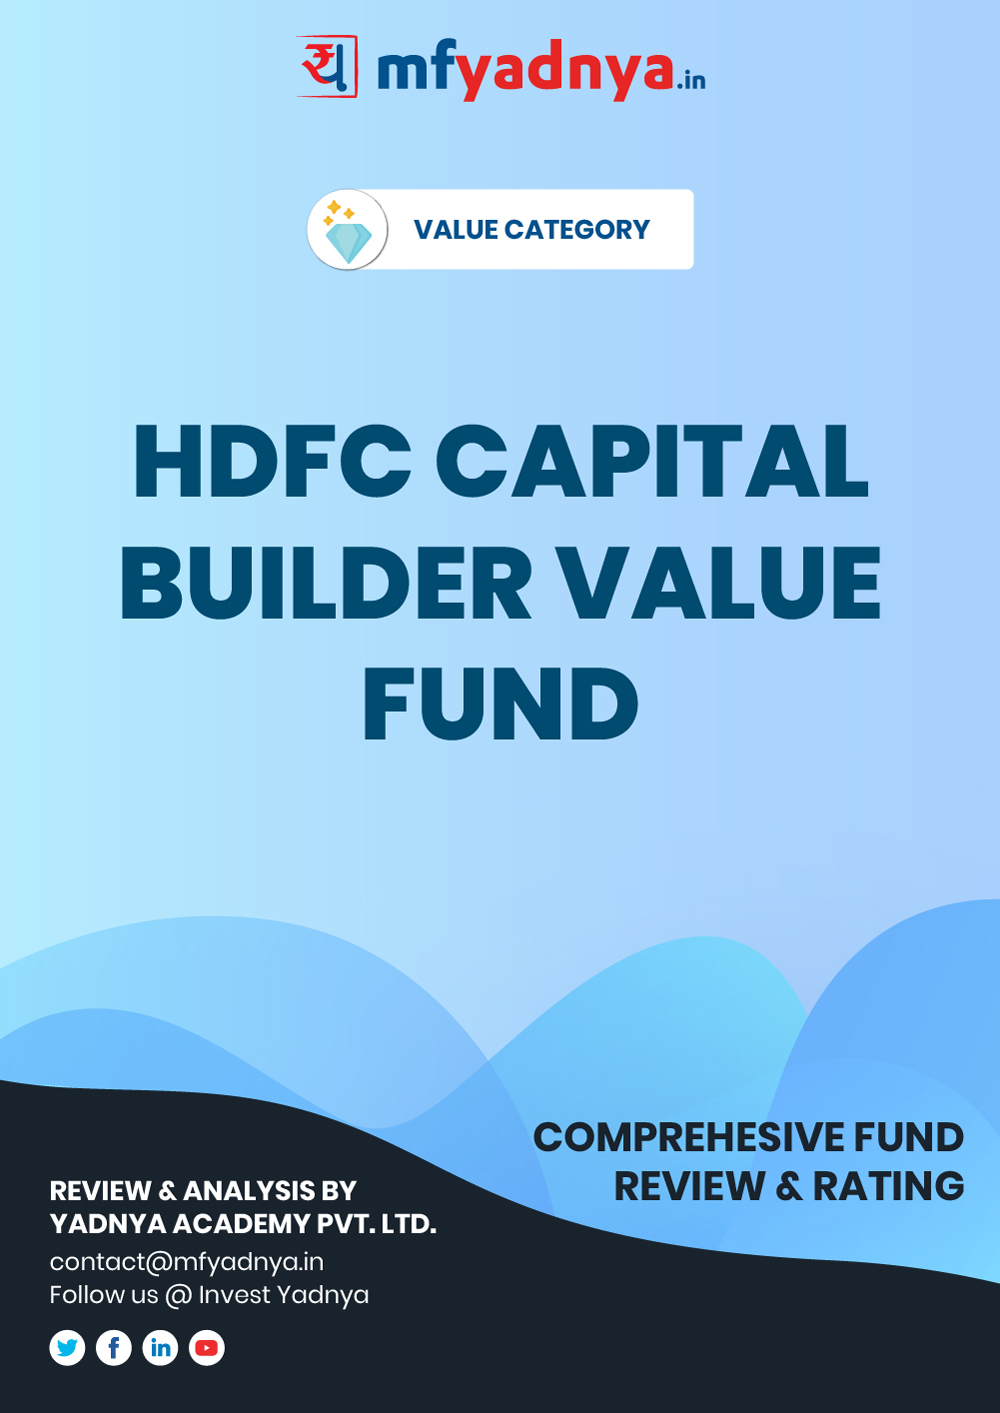 This e-book offers a comprehensive mutual fund review of HDFC Capital Builder Value Fund for contra category. It reviews the fund's return, ratio, allocation etc. ✔ Detailed Mutual Fund Analysis ✔ Latest Research Reports